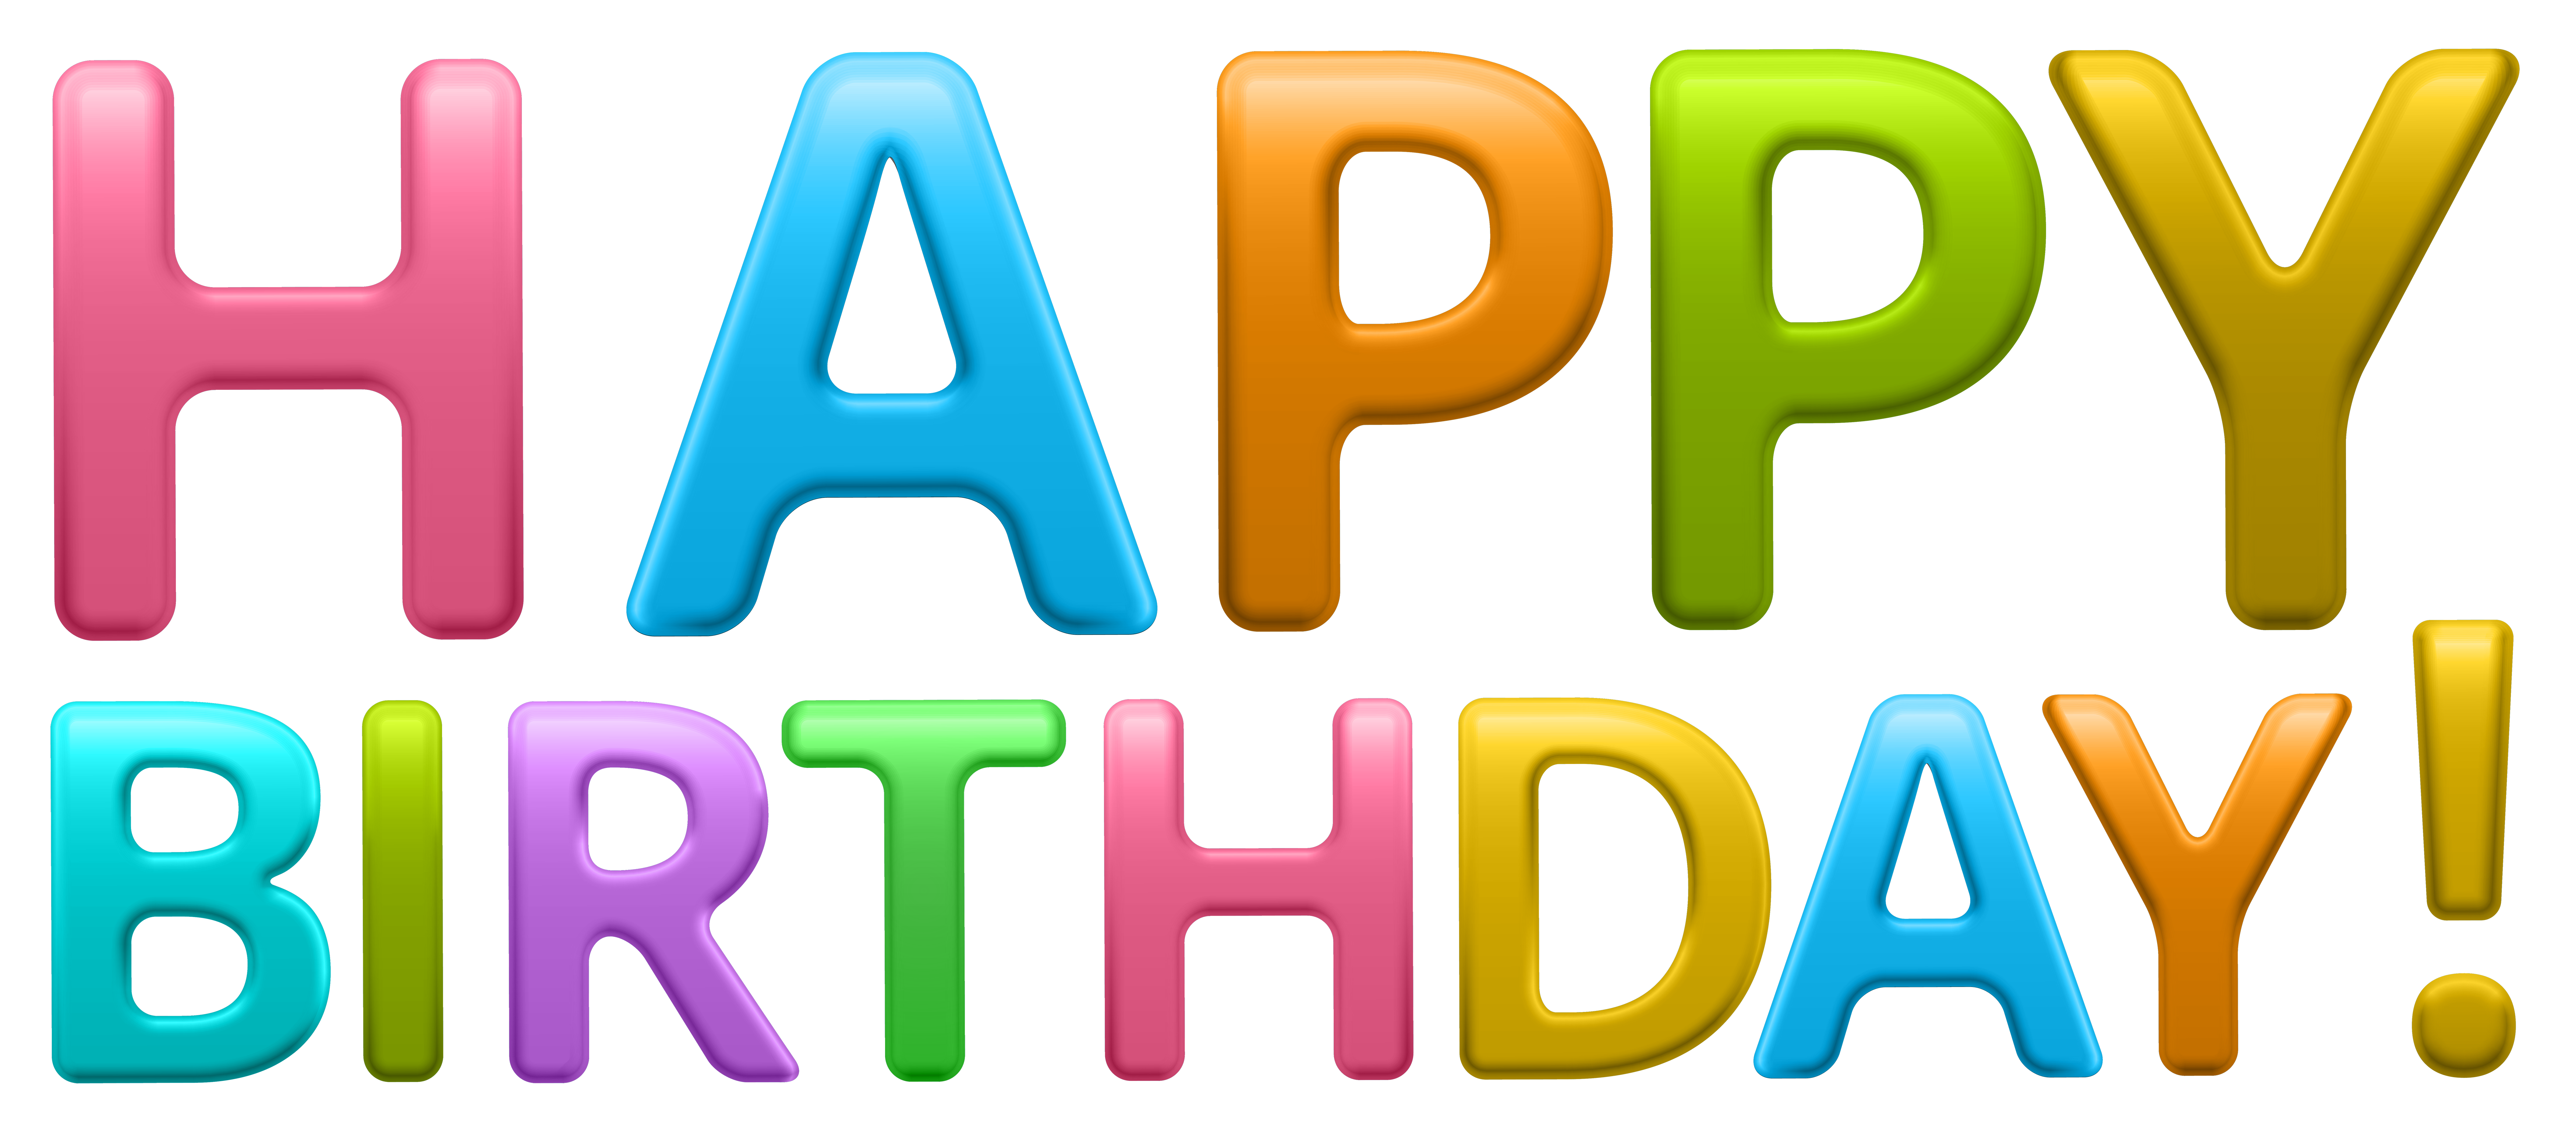 7000x3045 Colorful Happy Birthday Transparent Png Clip Art Imageu200b Gallery